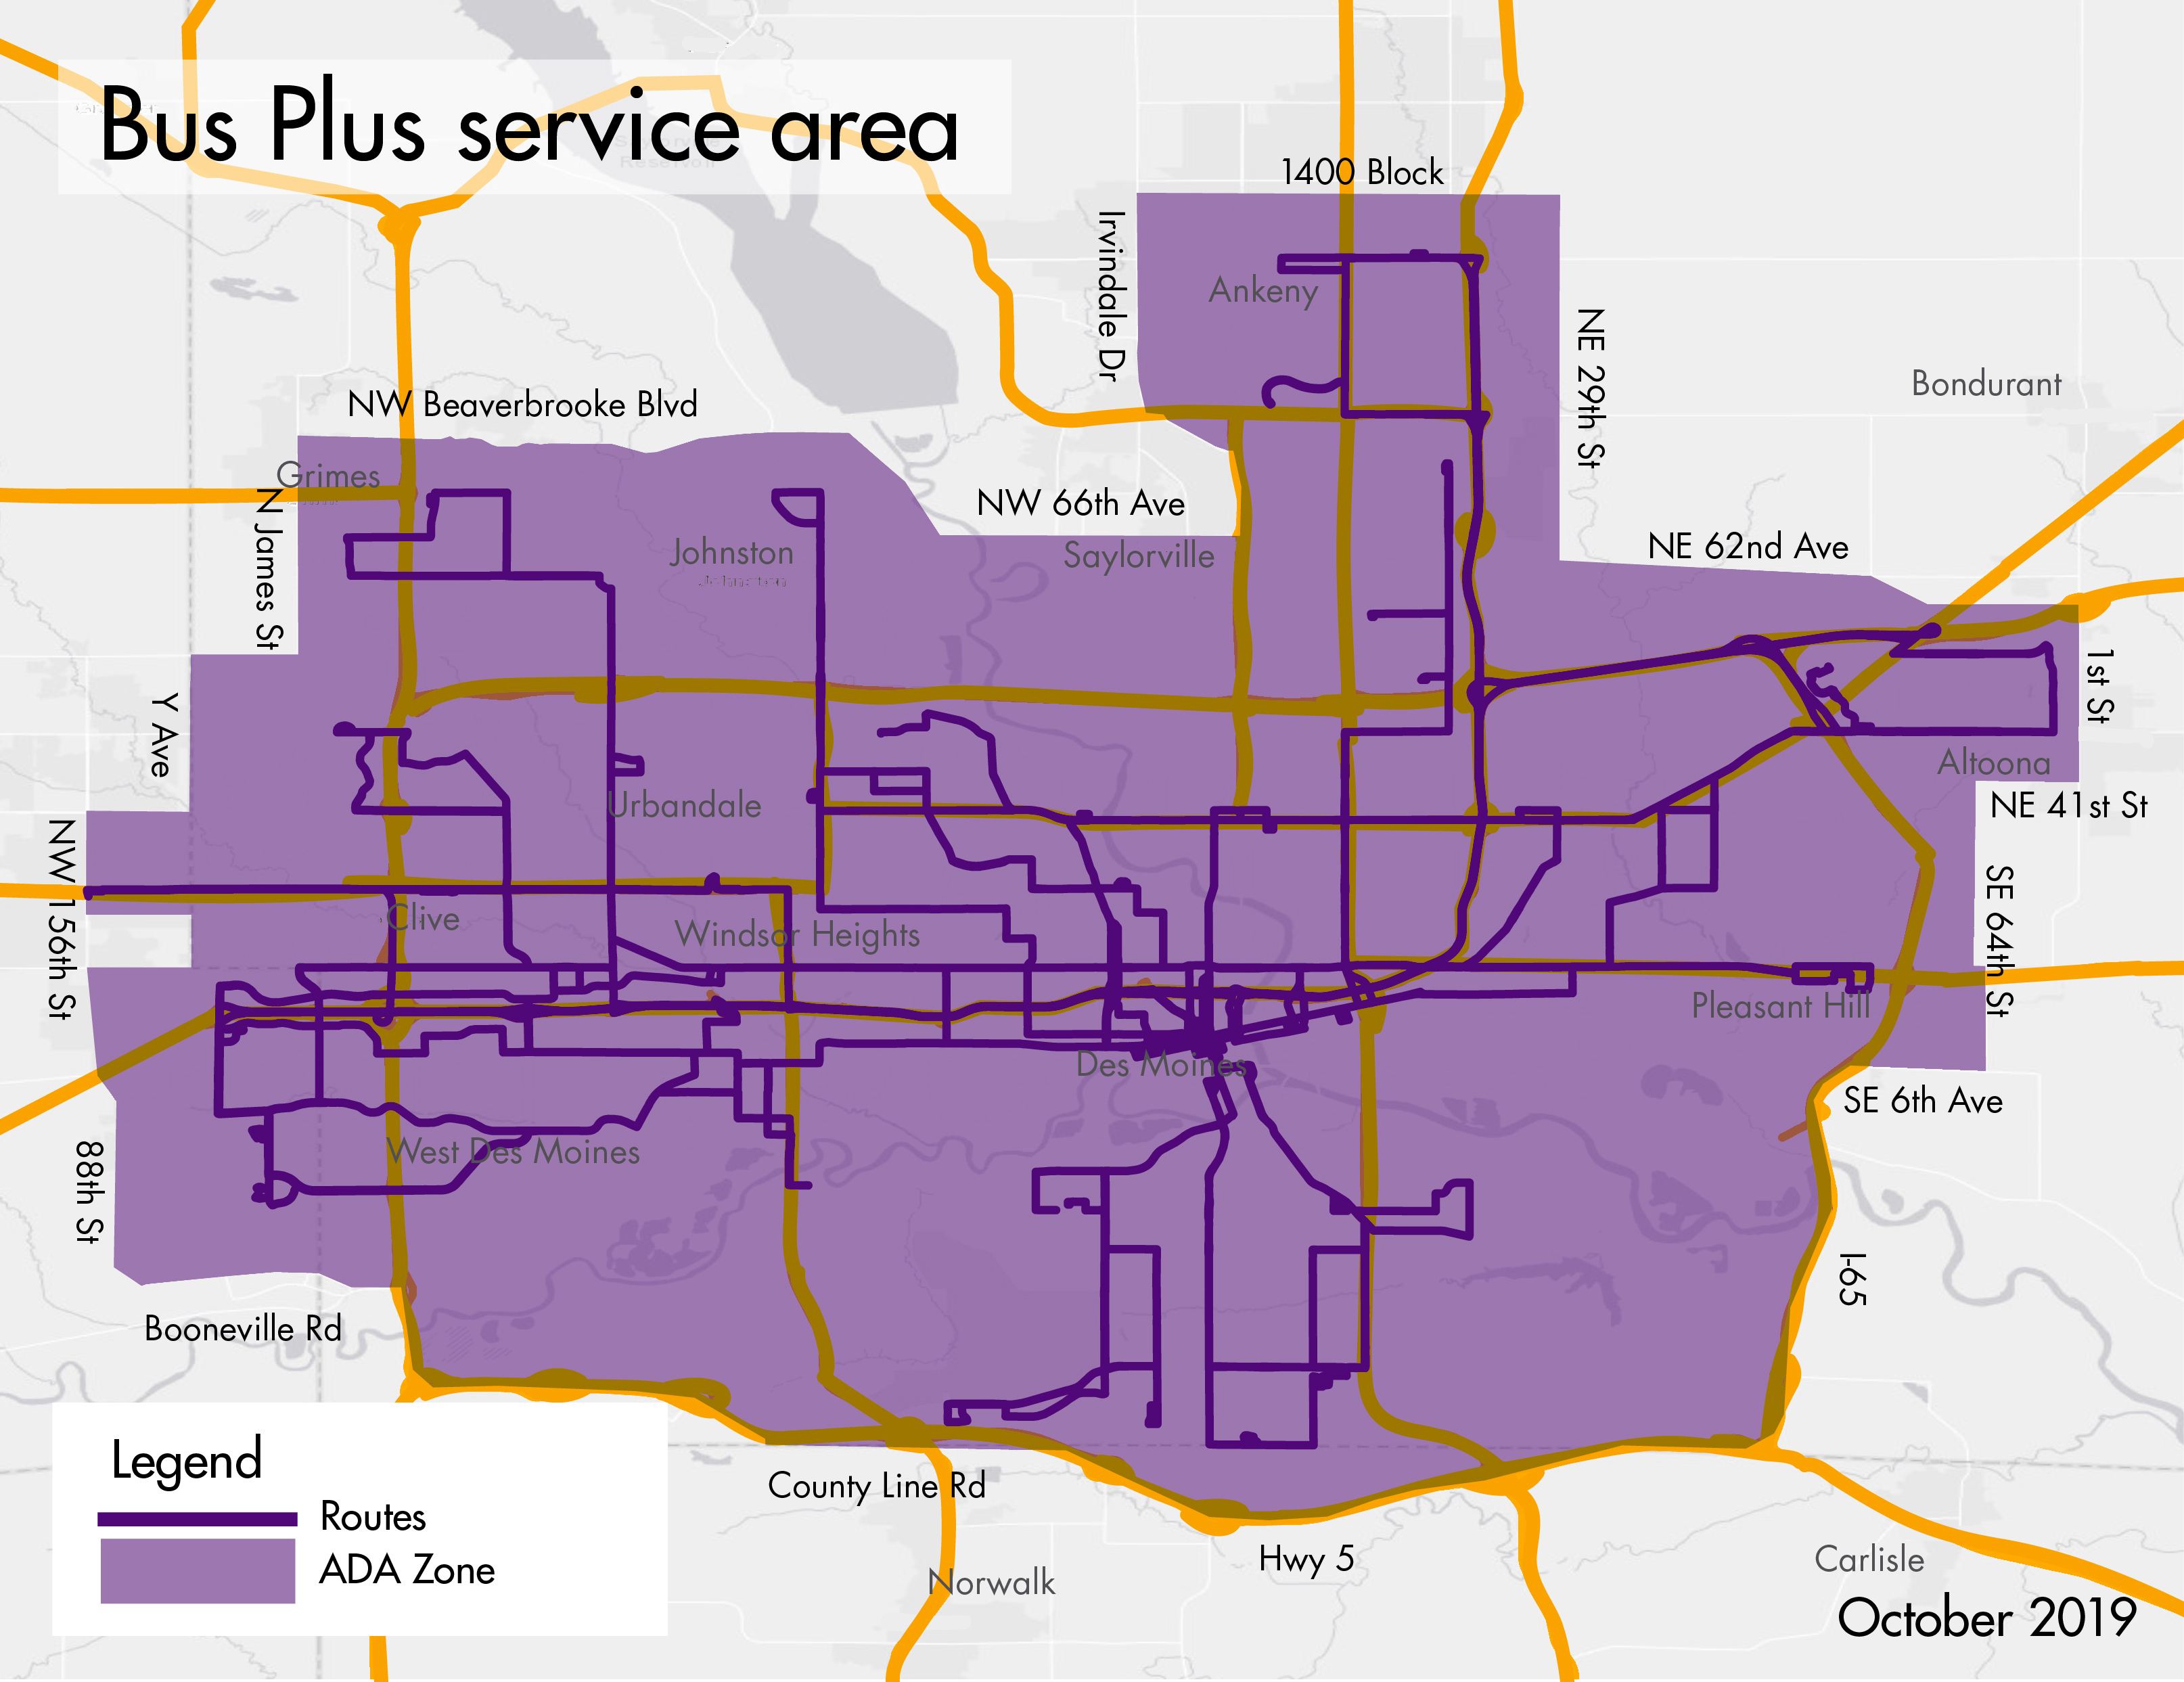 Map of the Bus Plus service area from October 2019.